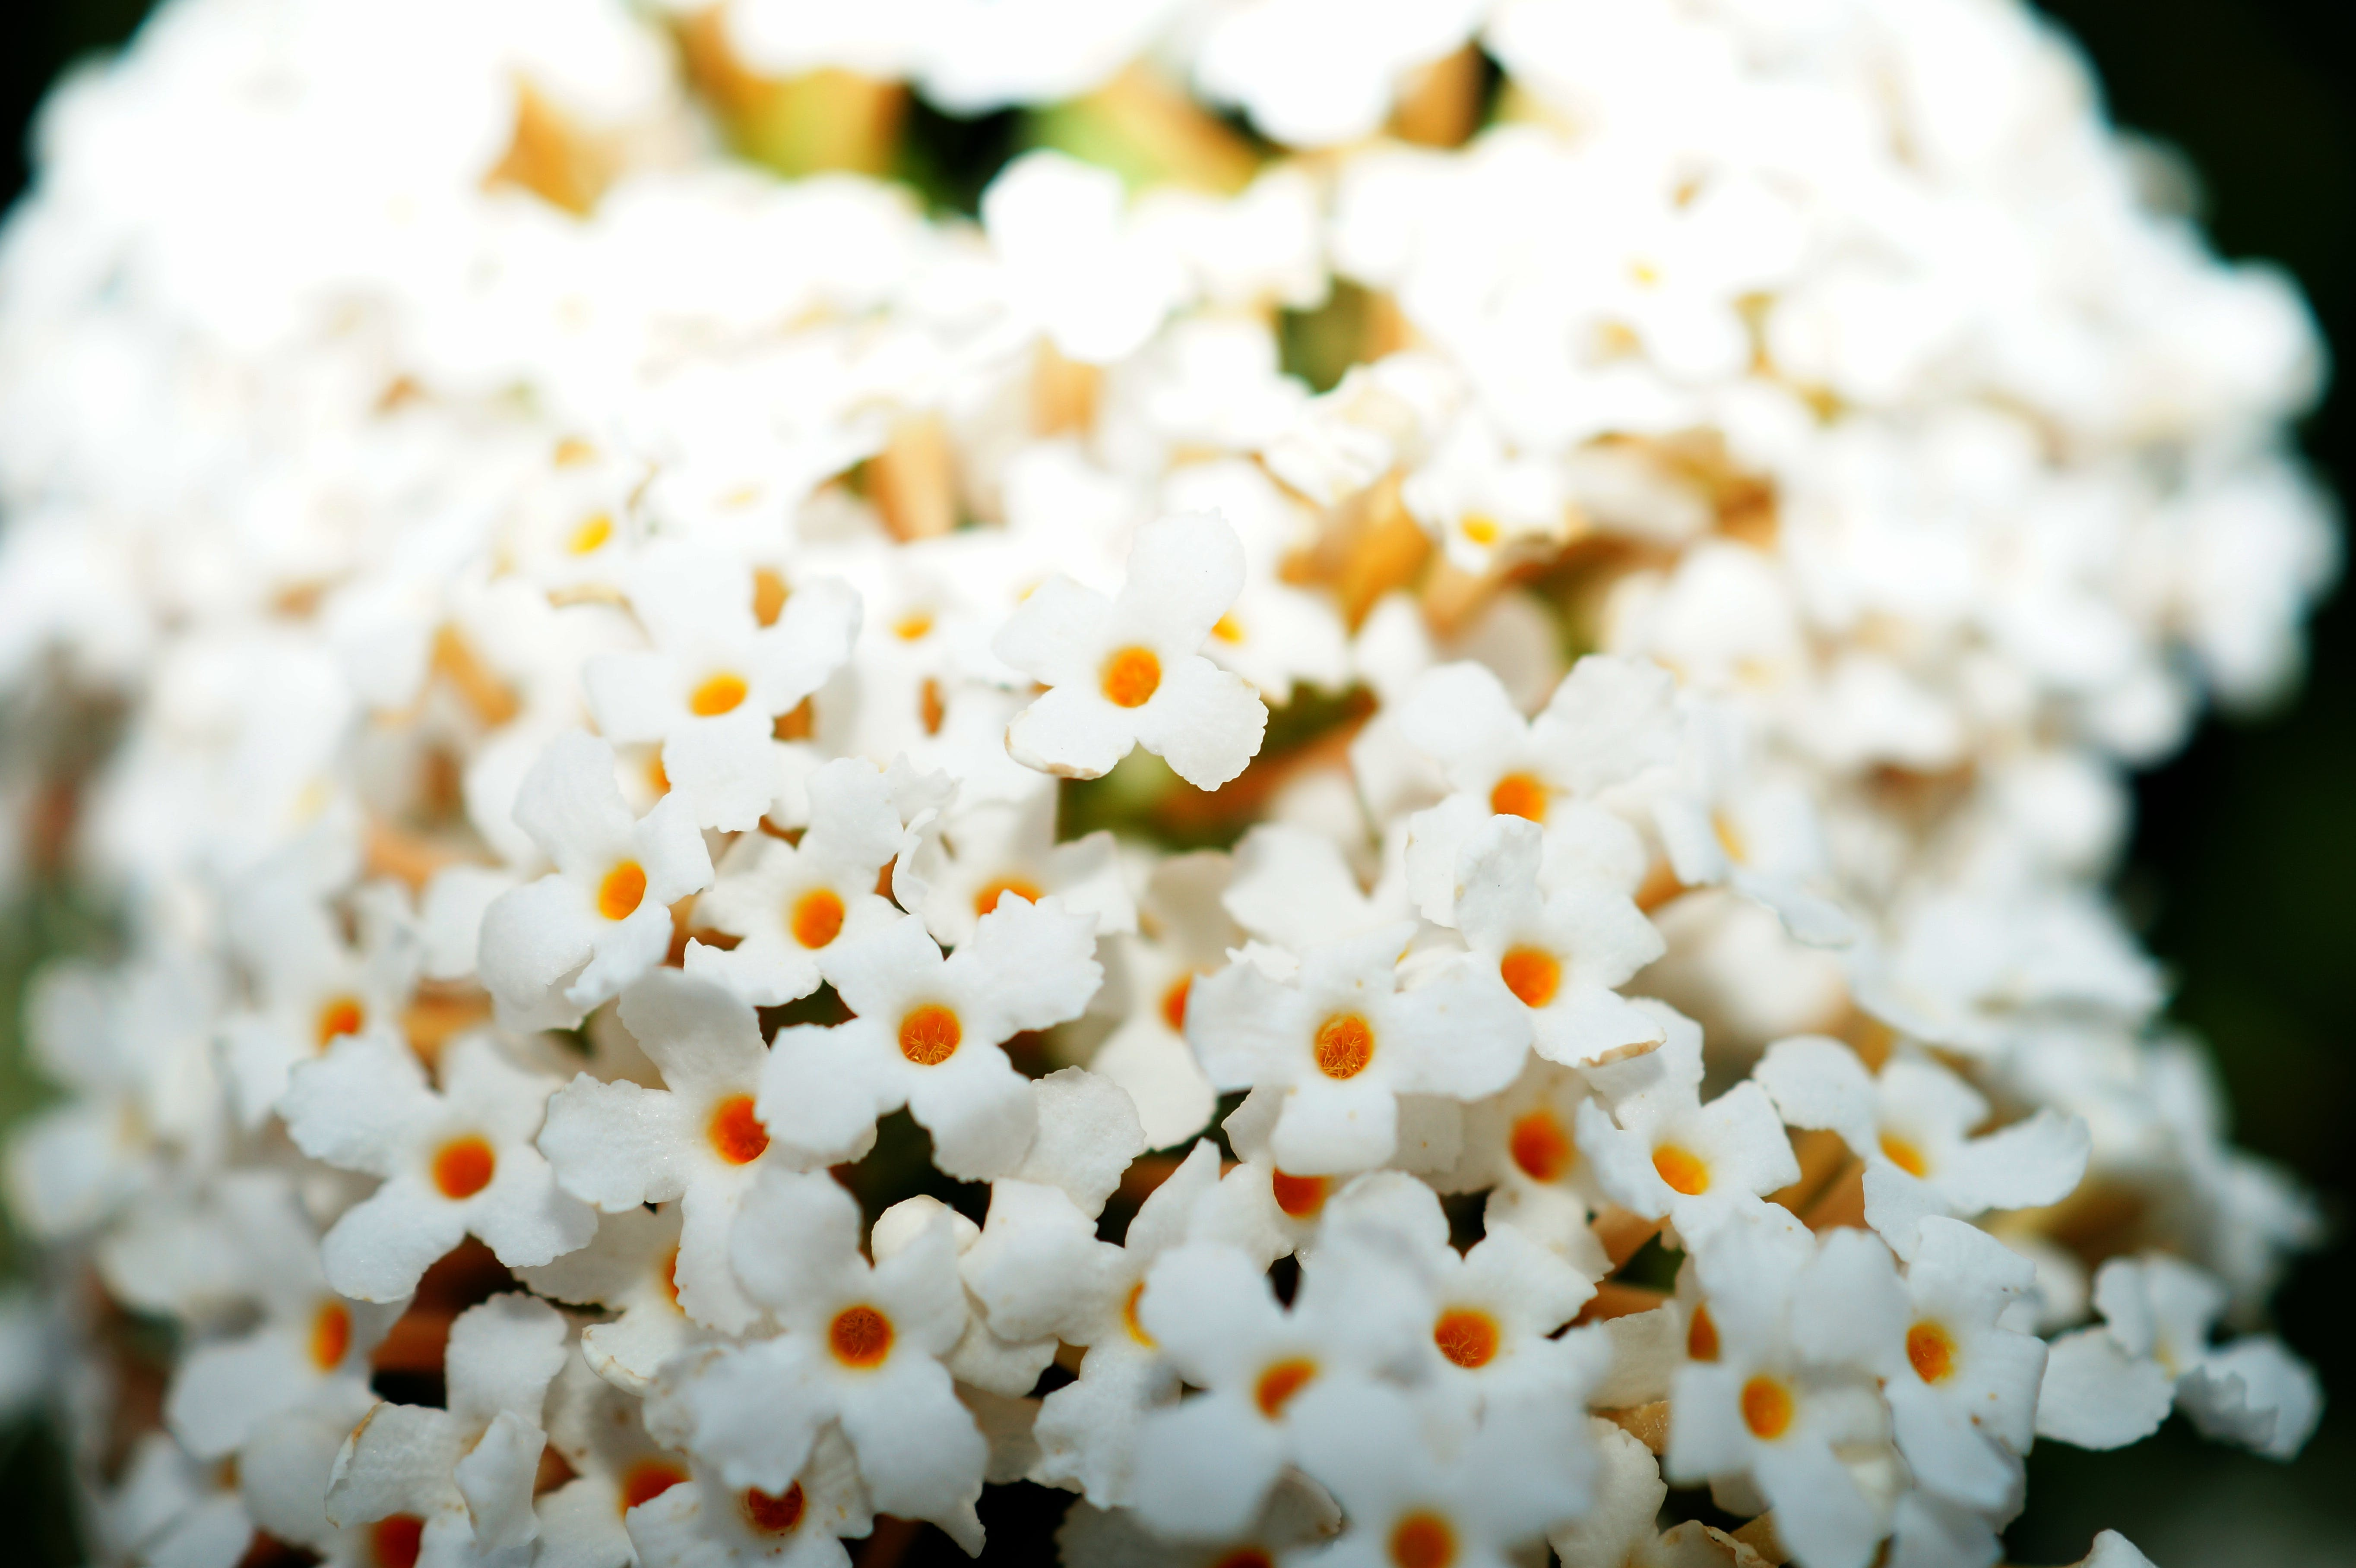 Free stock photo of flowers, macro photography, white